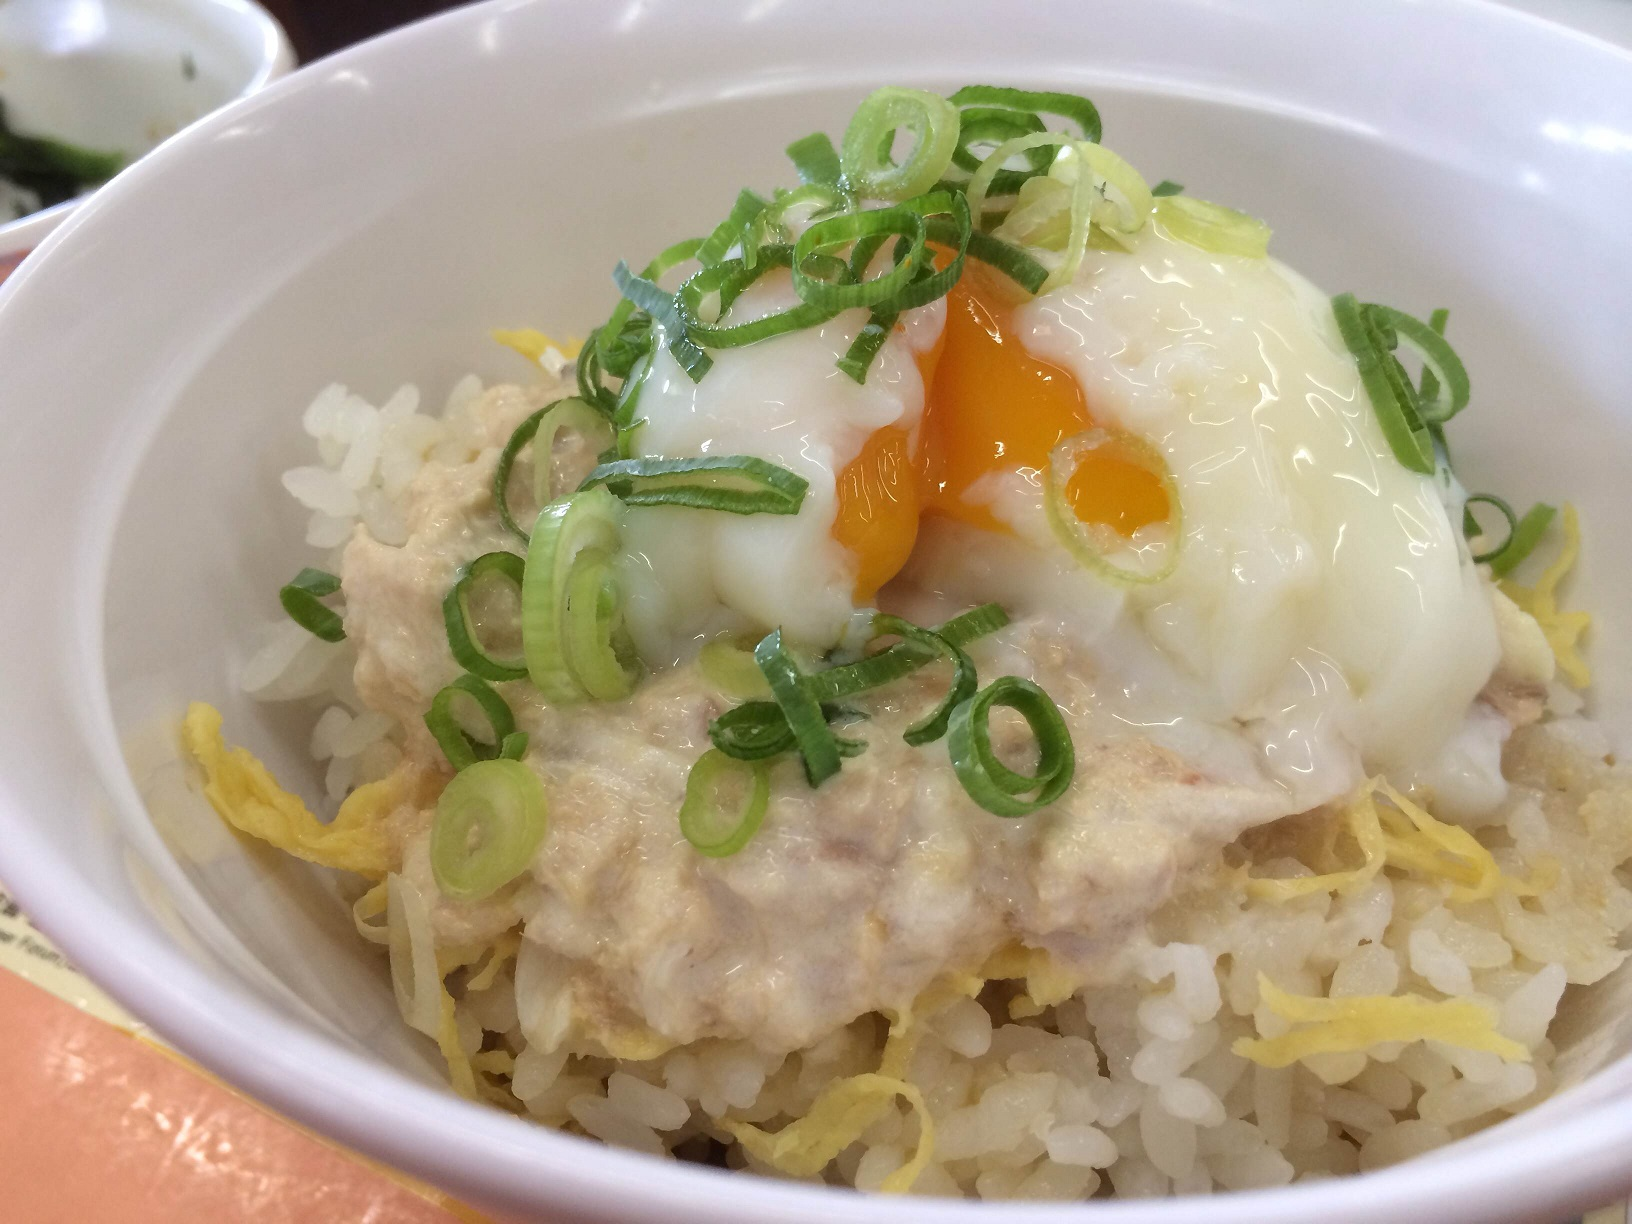 http://www.wakayama-u.ac.jp/blog/wadai_scope/koho/files/umeharas/ws%20IMG_9929.jpg